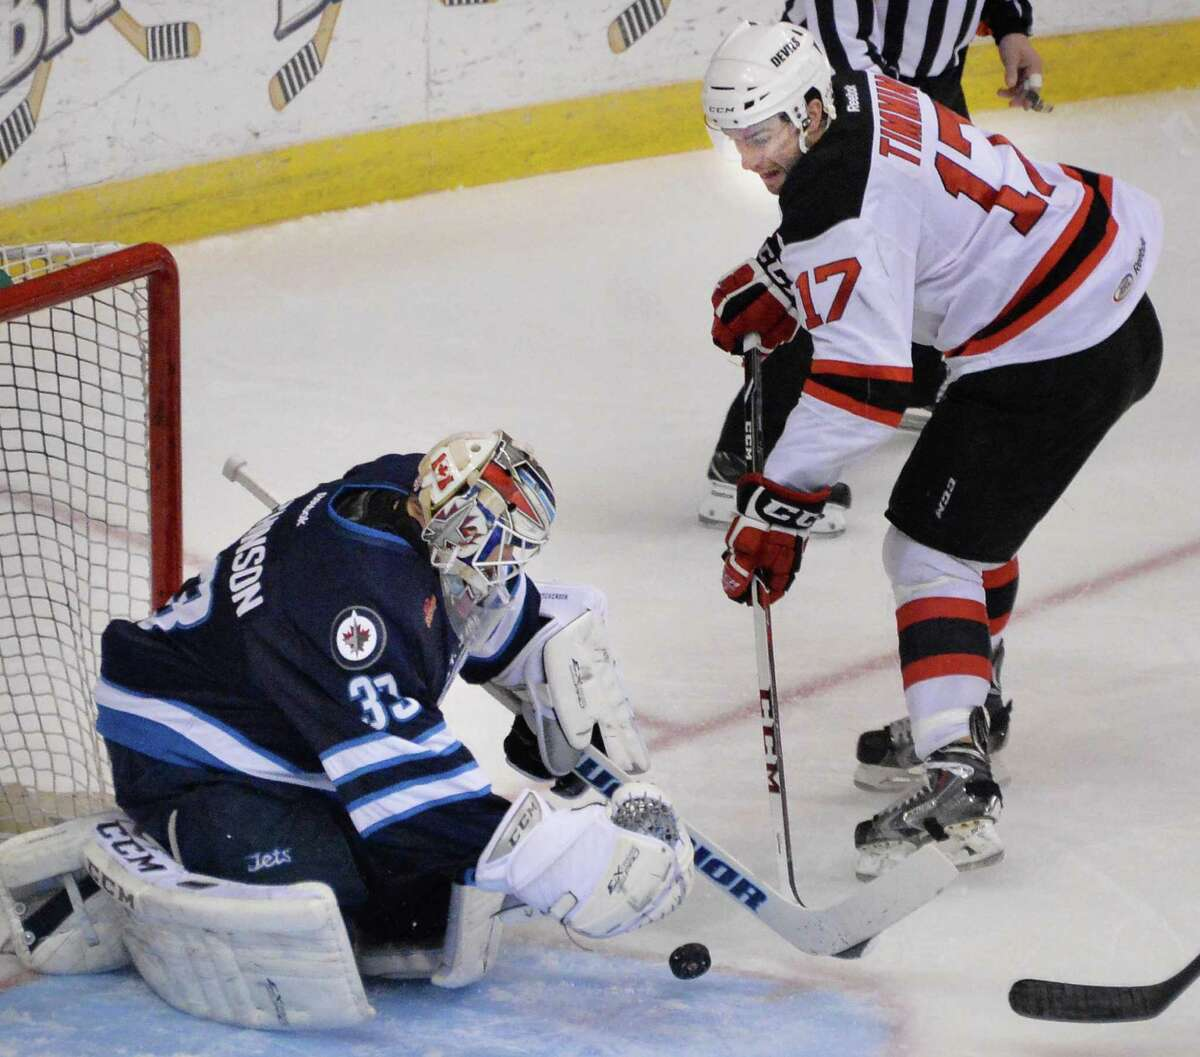 Albany Devils' #17 Scott Timmins, right, has his shot blocked by St. John's IceCaps goalie Michael Hutchinson during the second game of a best-of-5 American Hockey League playoff series at the Times Union Center Saturday April 26, 2014, in Albany, NY. (John Carl D'Annibale / Times Union)